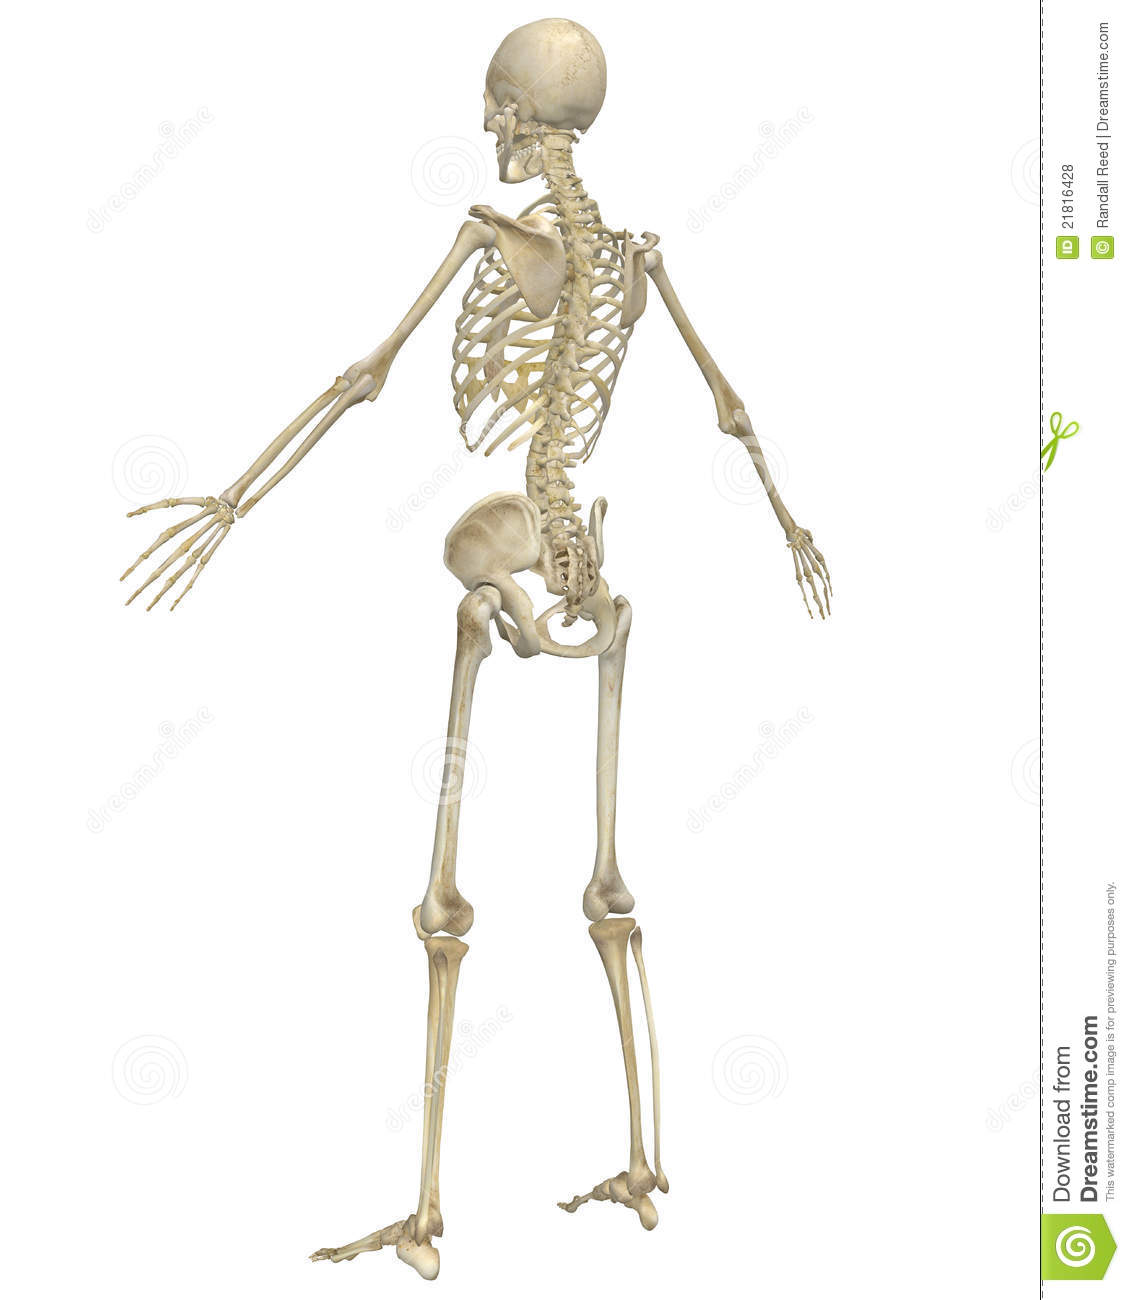 Human skeleton anatomy angled rear view stock illustration download human skeleton anatomy angled rear view stock illustration illustration of femur cranium ccuart Image collections